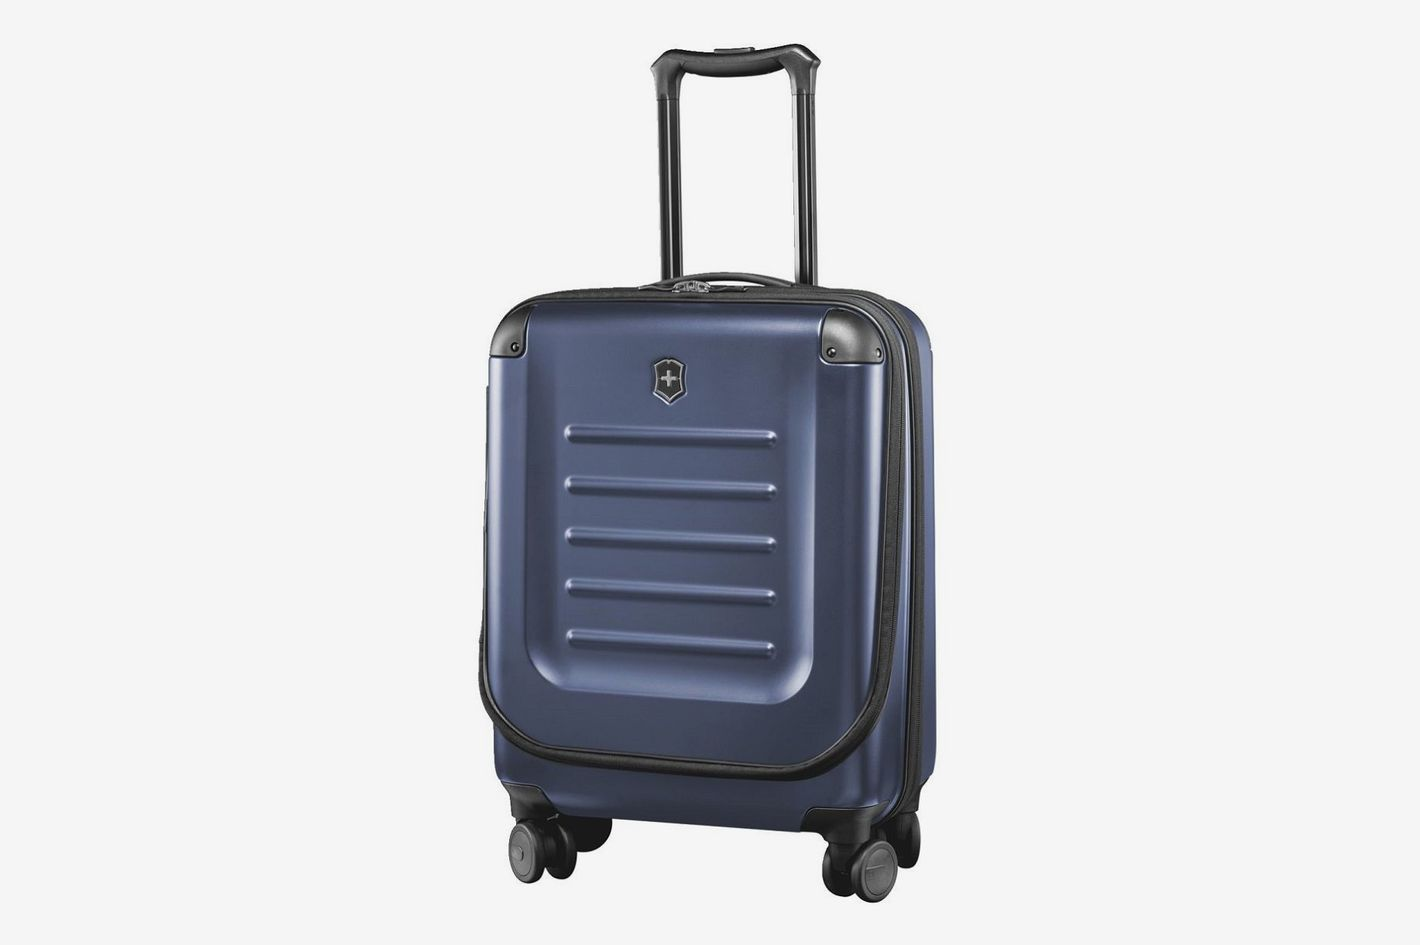 Victorinox Spectra 2.0 Expandable Carry-On Hardside Spinner Suitcase